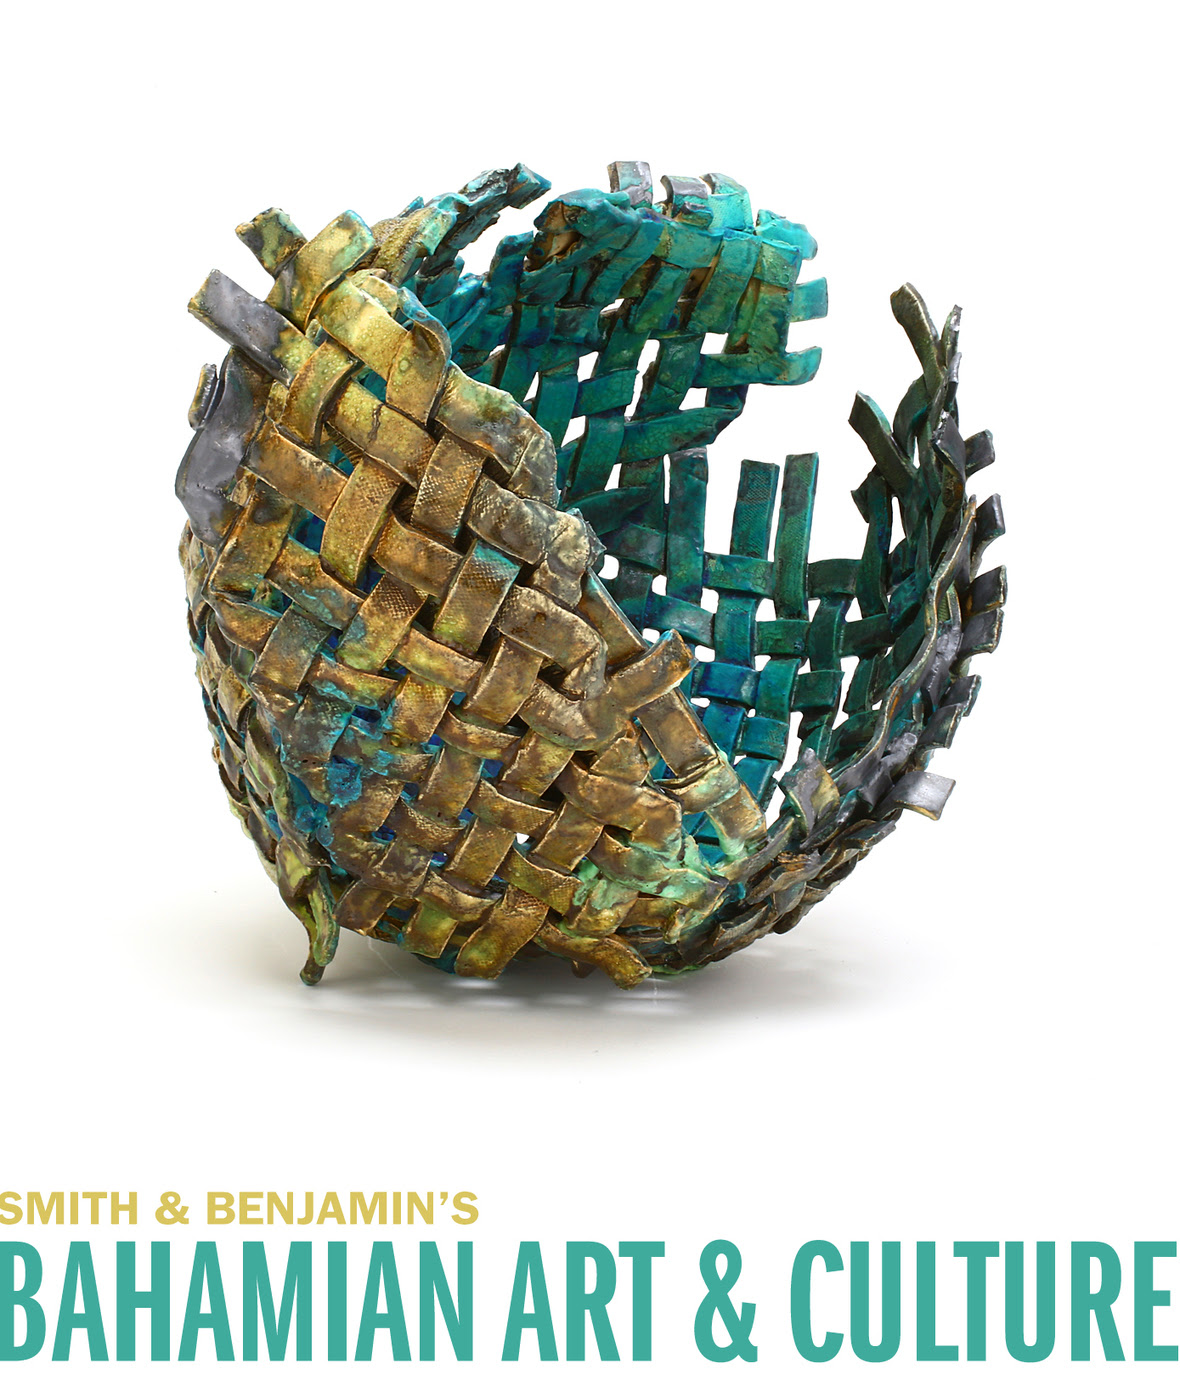 "Smith & Benjamin's 'BAHAMIAN ART & CULTURE' Issue No. 314 | ""Overripe Banana"" by Bahamian artist Anina Major"